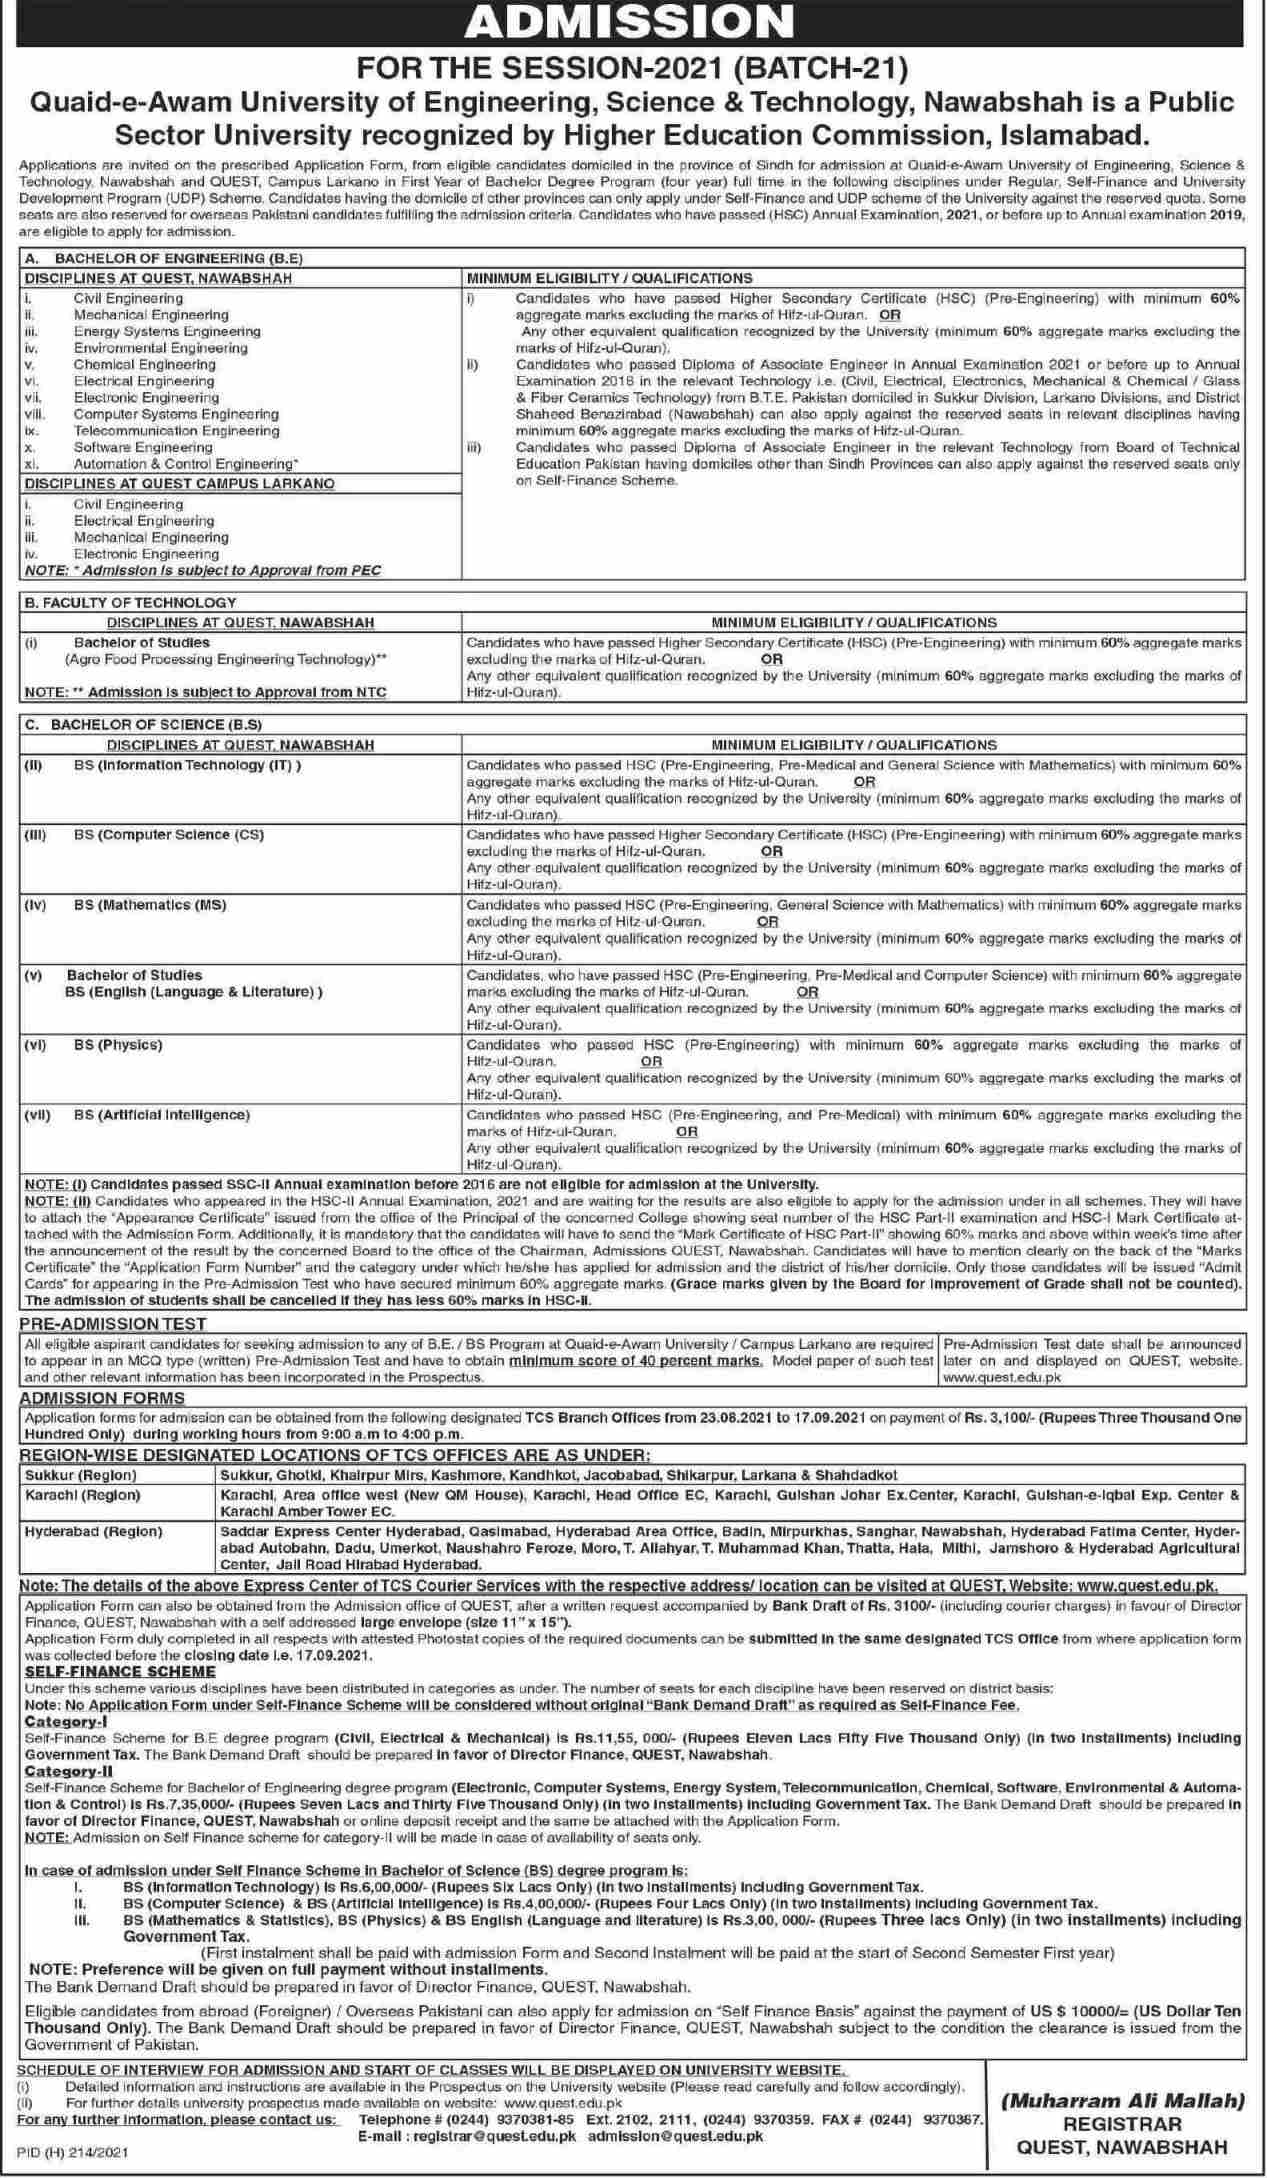 admission announcement of Quaid-e-awam University Of Engineering, Sciences & Technology